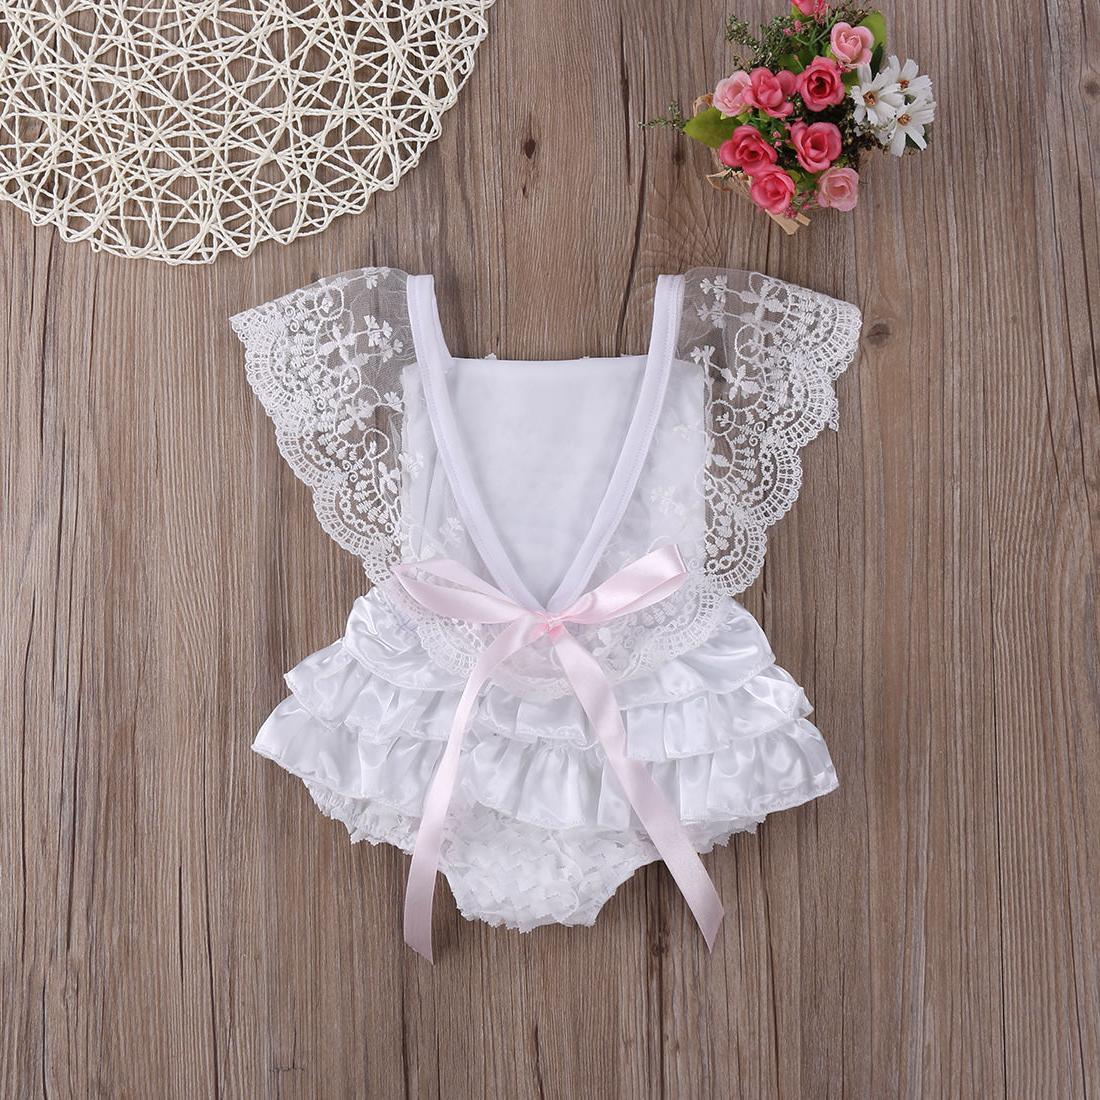 New Kids Baby Clothes Lace Floral Romper Jumpsuit Outfits Stock